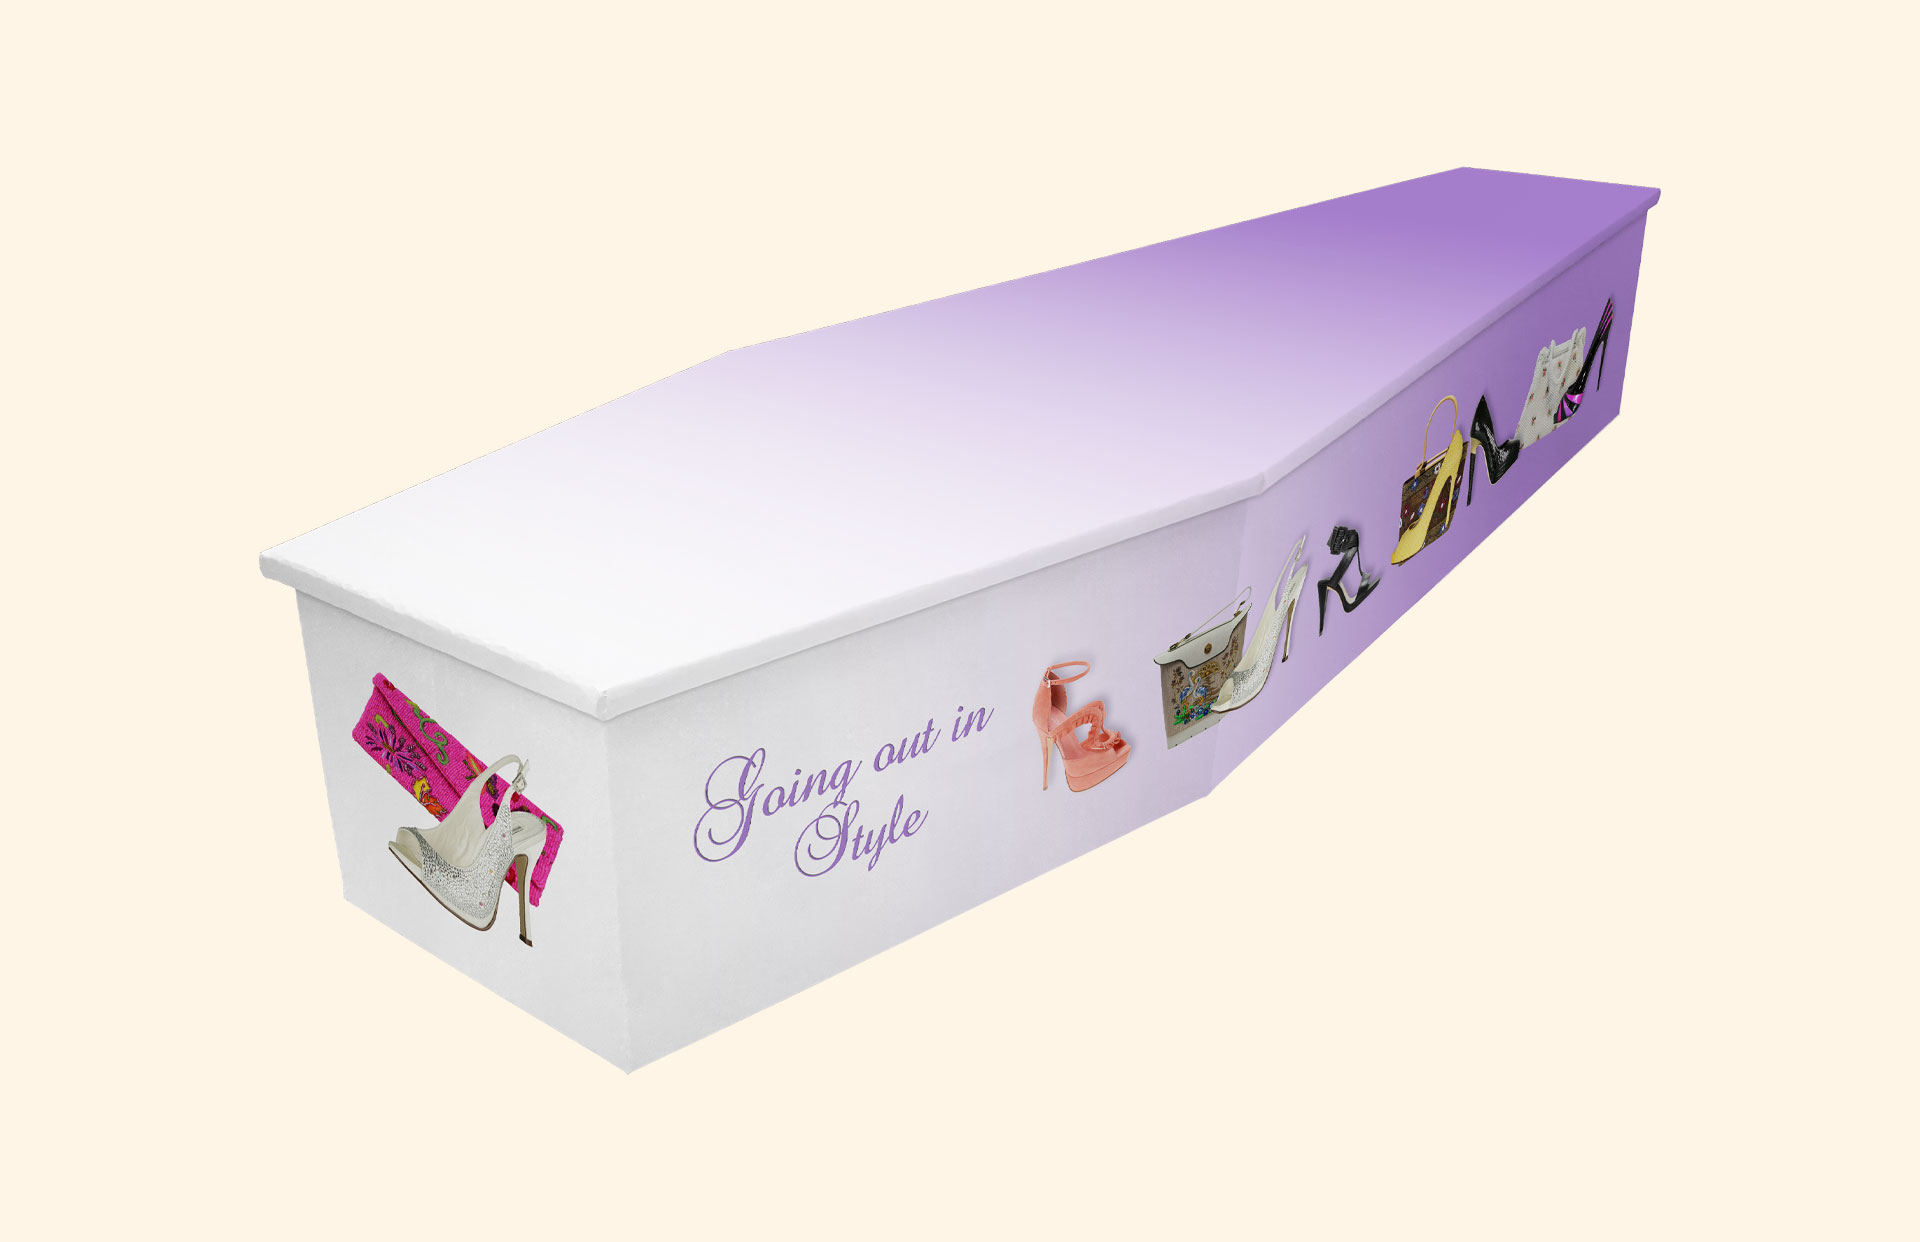 Going out in Style design in lilac on a cardboard coffin